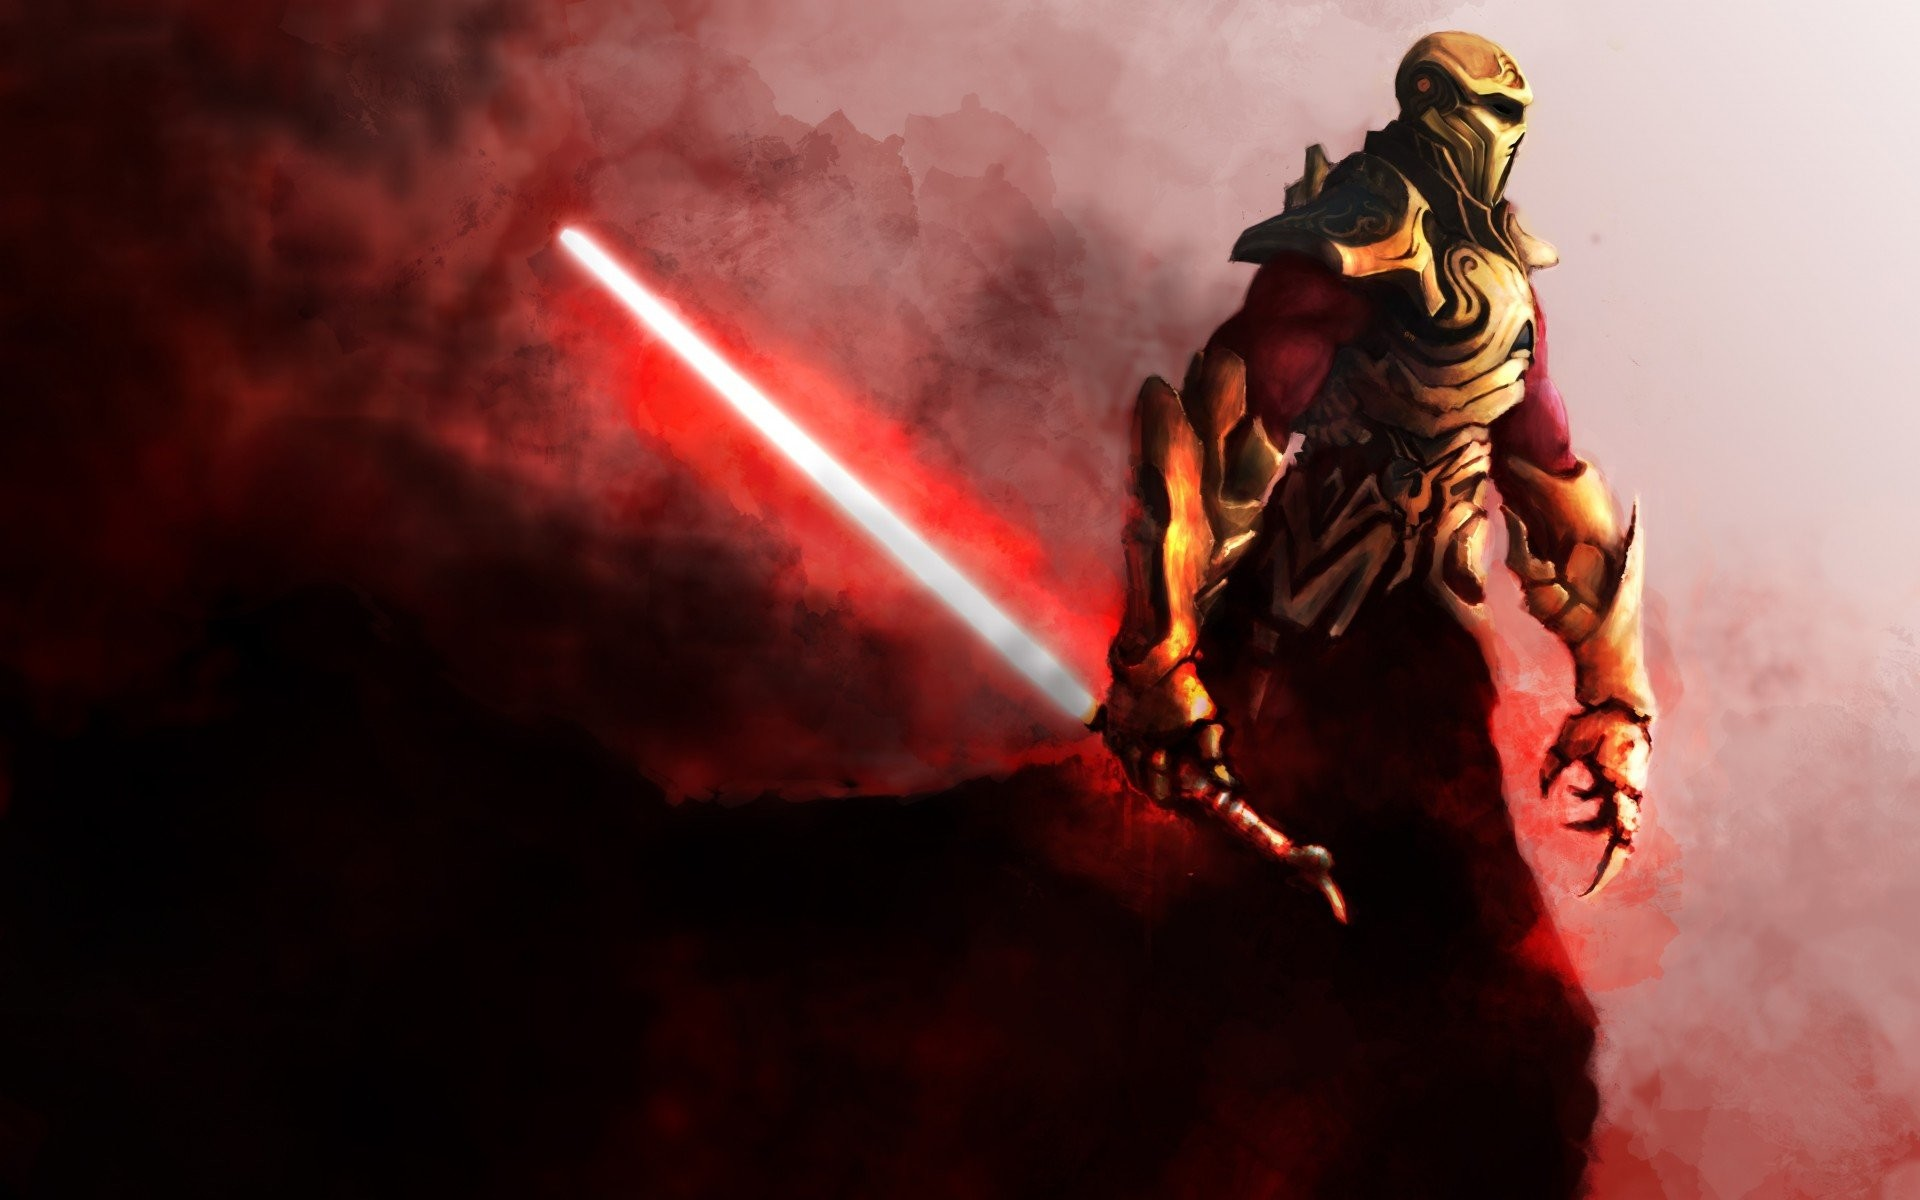 Star Wars Old Republic Wallpaper: Sith Wallpaper 1080p (70+ Images